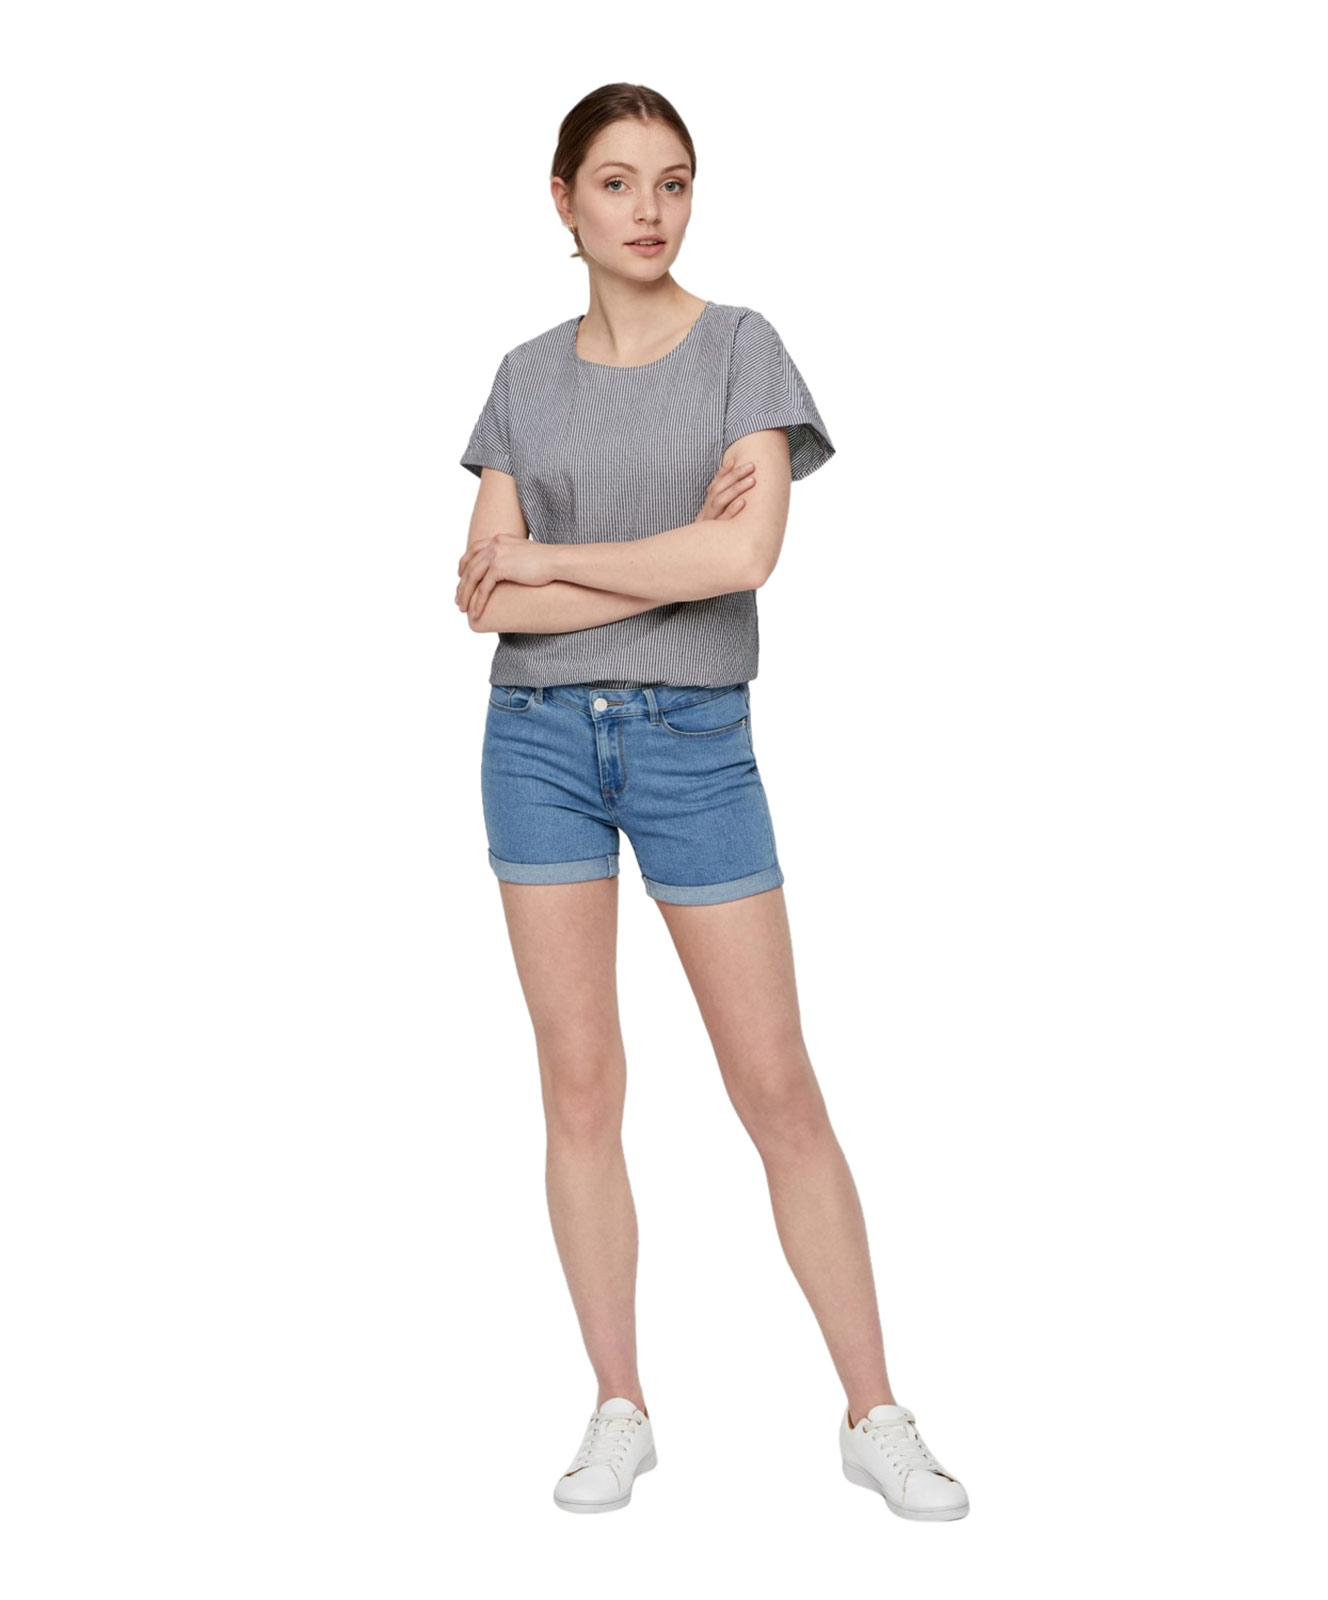 Hosen - Vero Moda Jeans Shorts Hot Seven in Light Blue Denim  - Onlineshop Jeans Meile